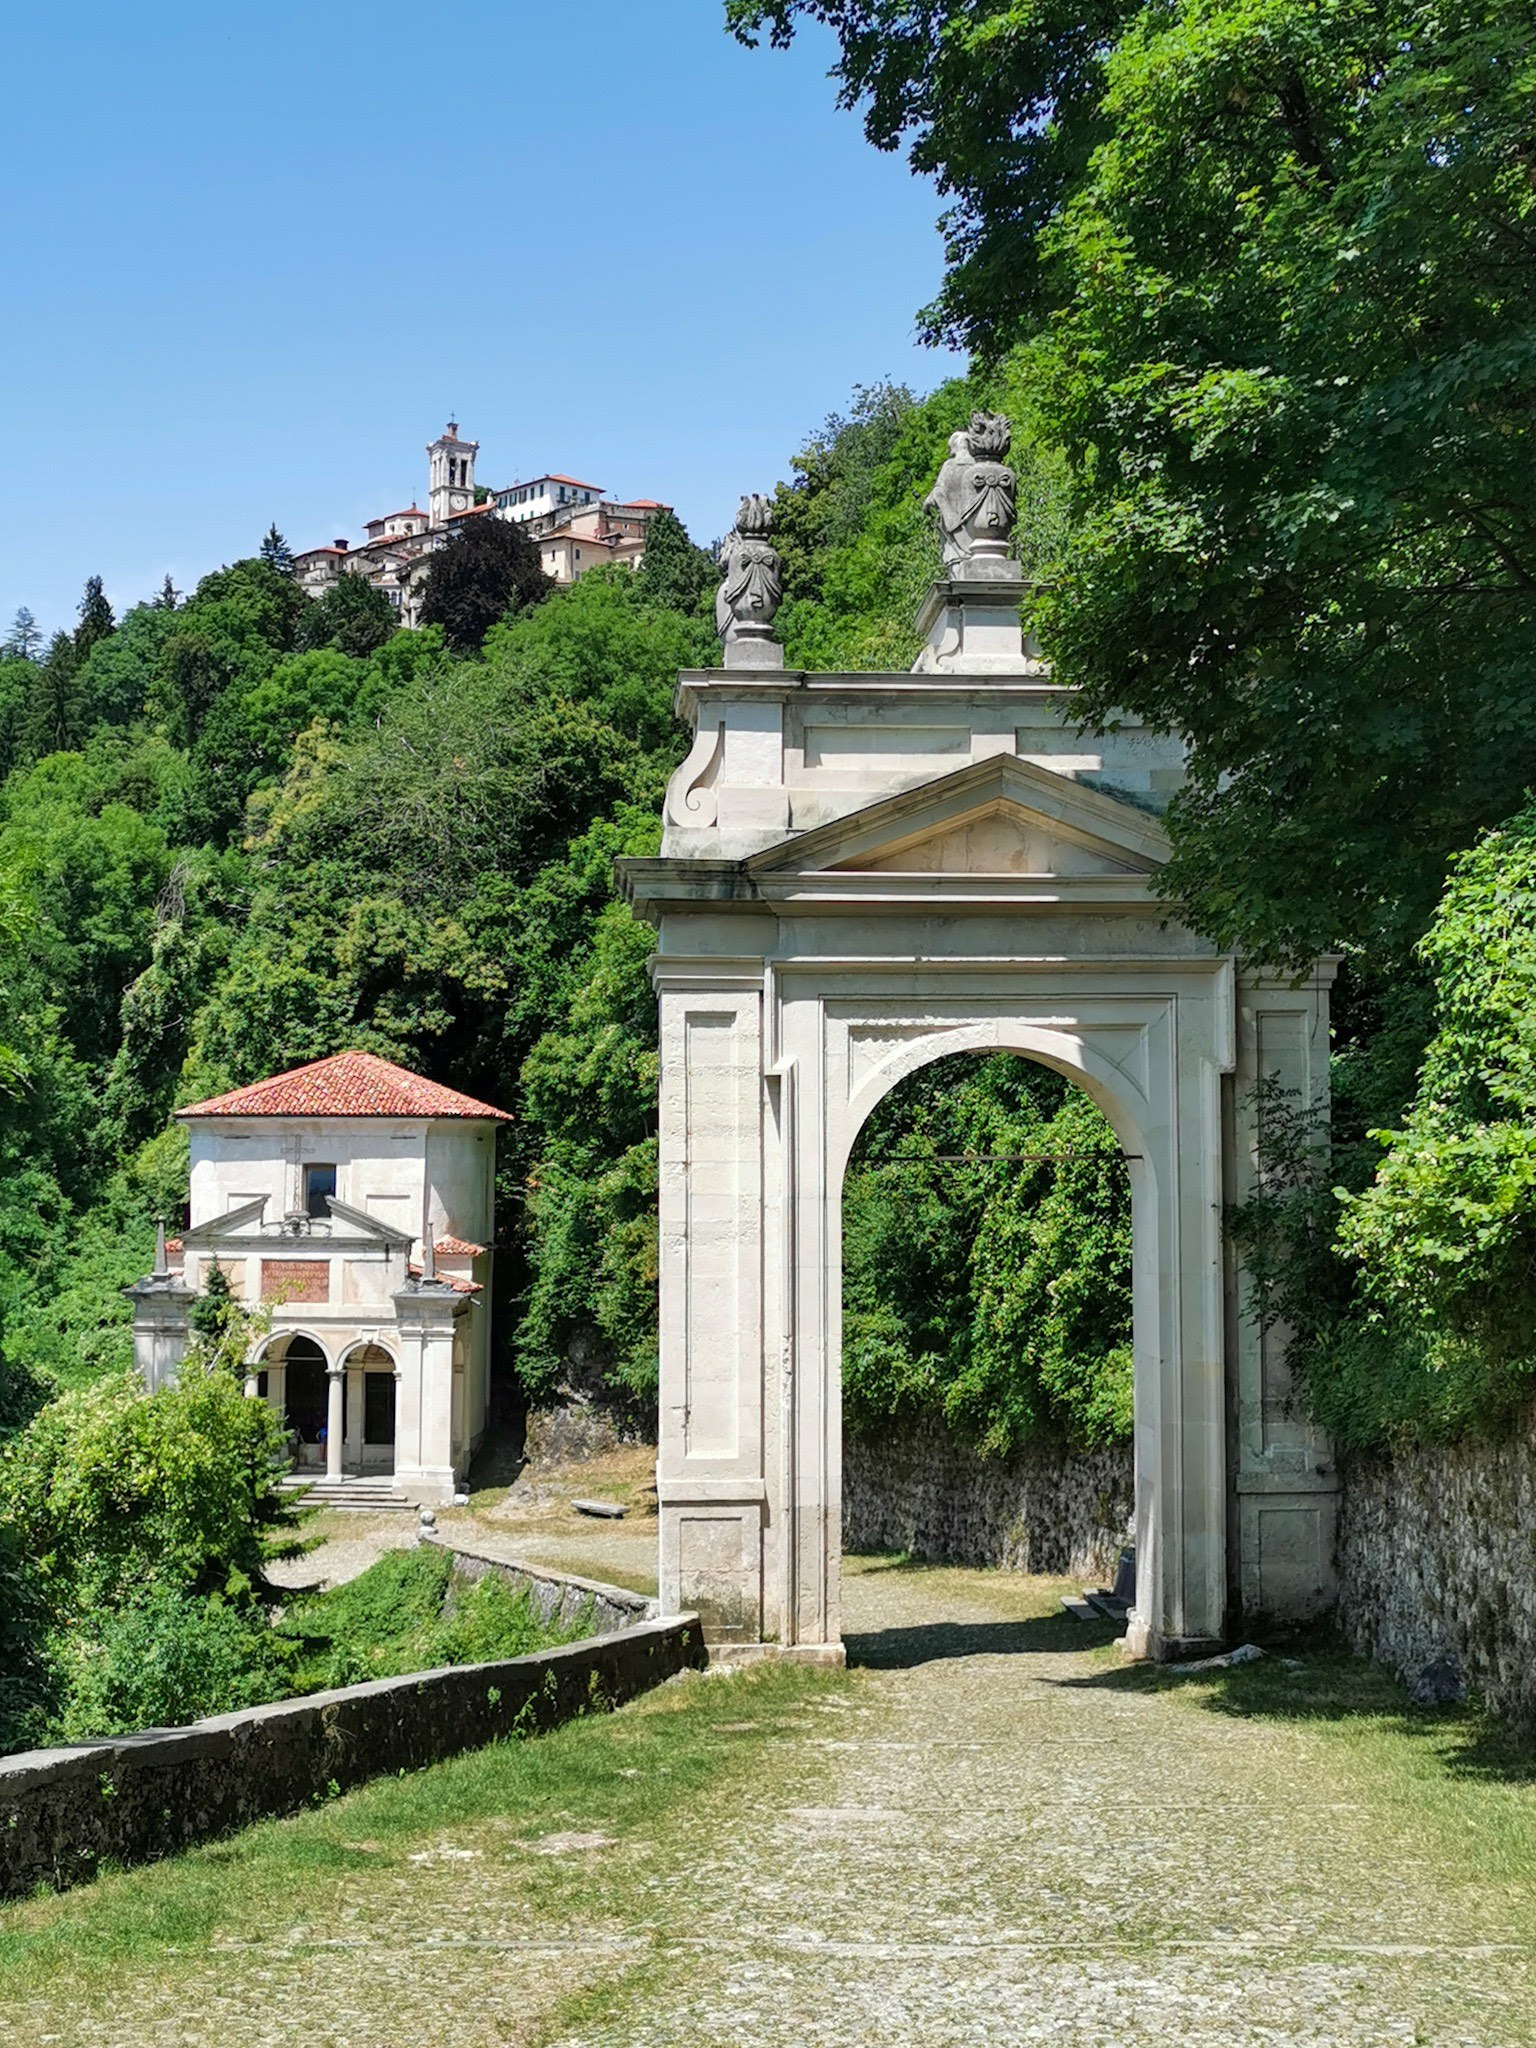 The Chapels Trail at the Sacro Monte di Varese